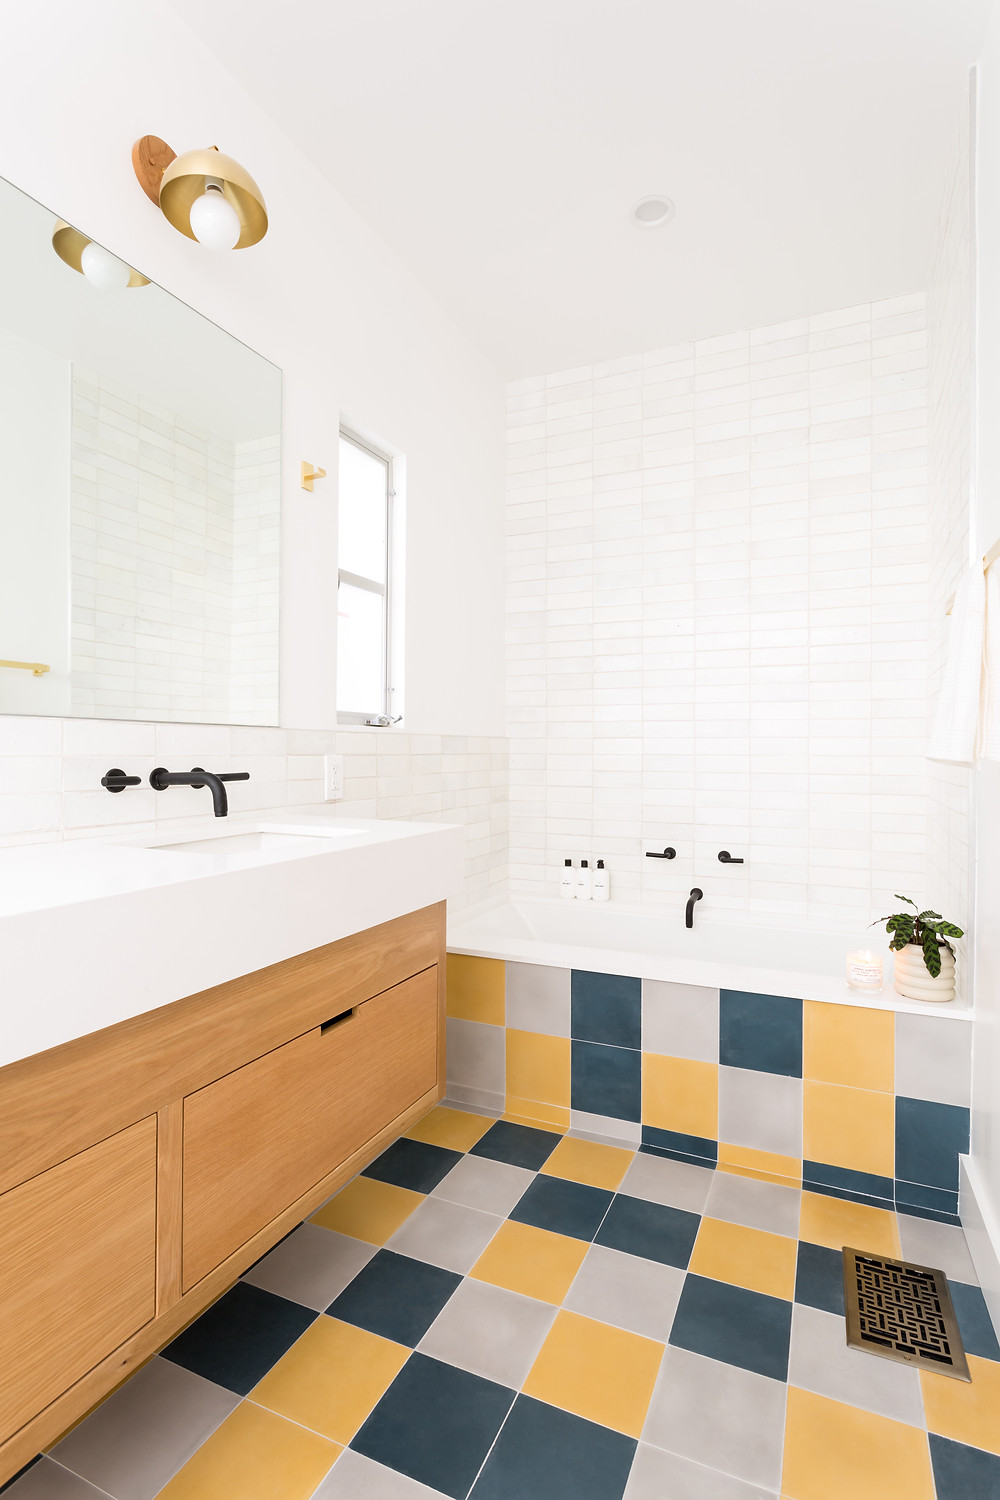 Bathroom remodel with colorful floor tile squares